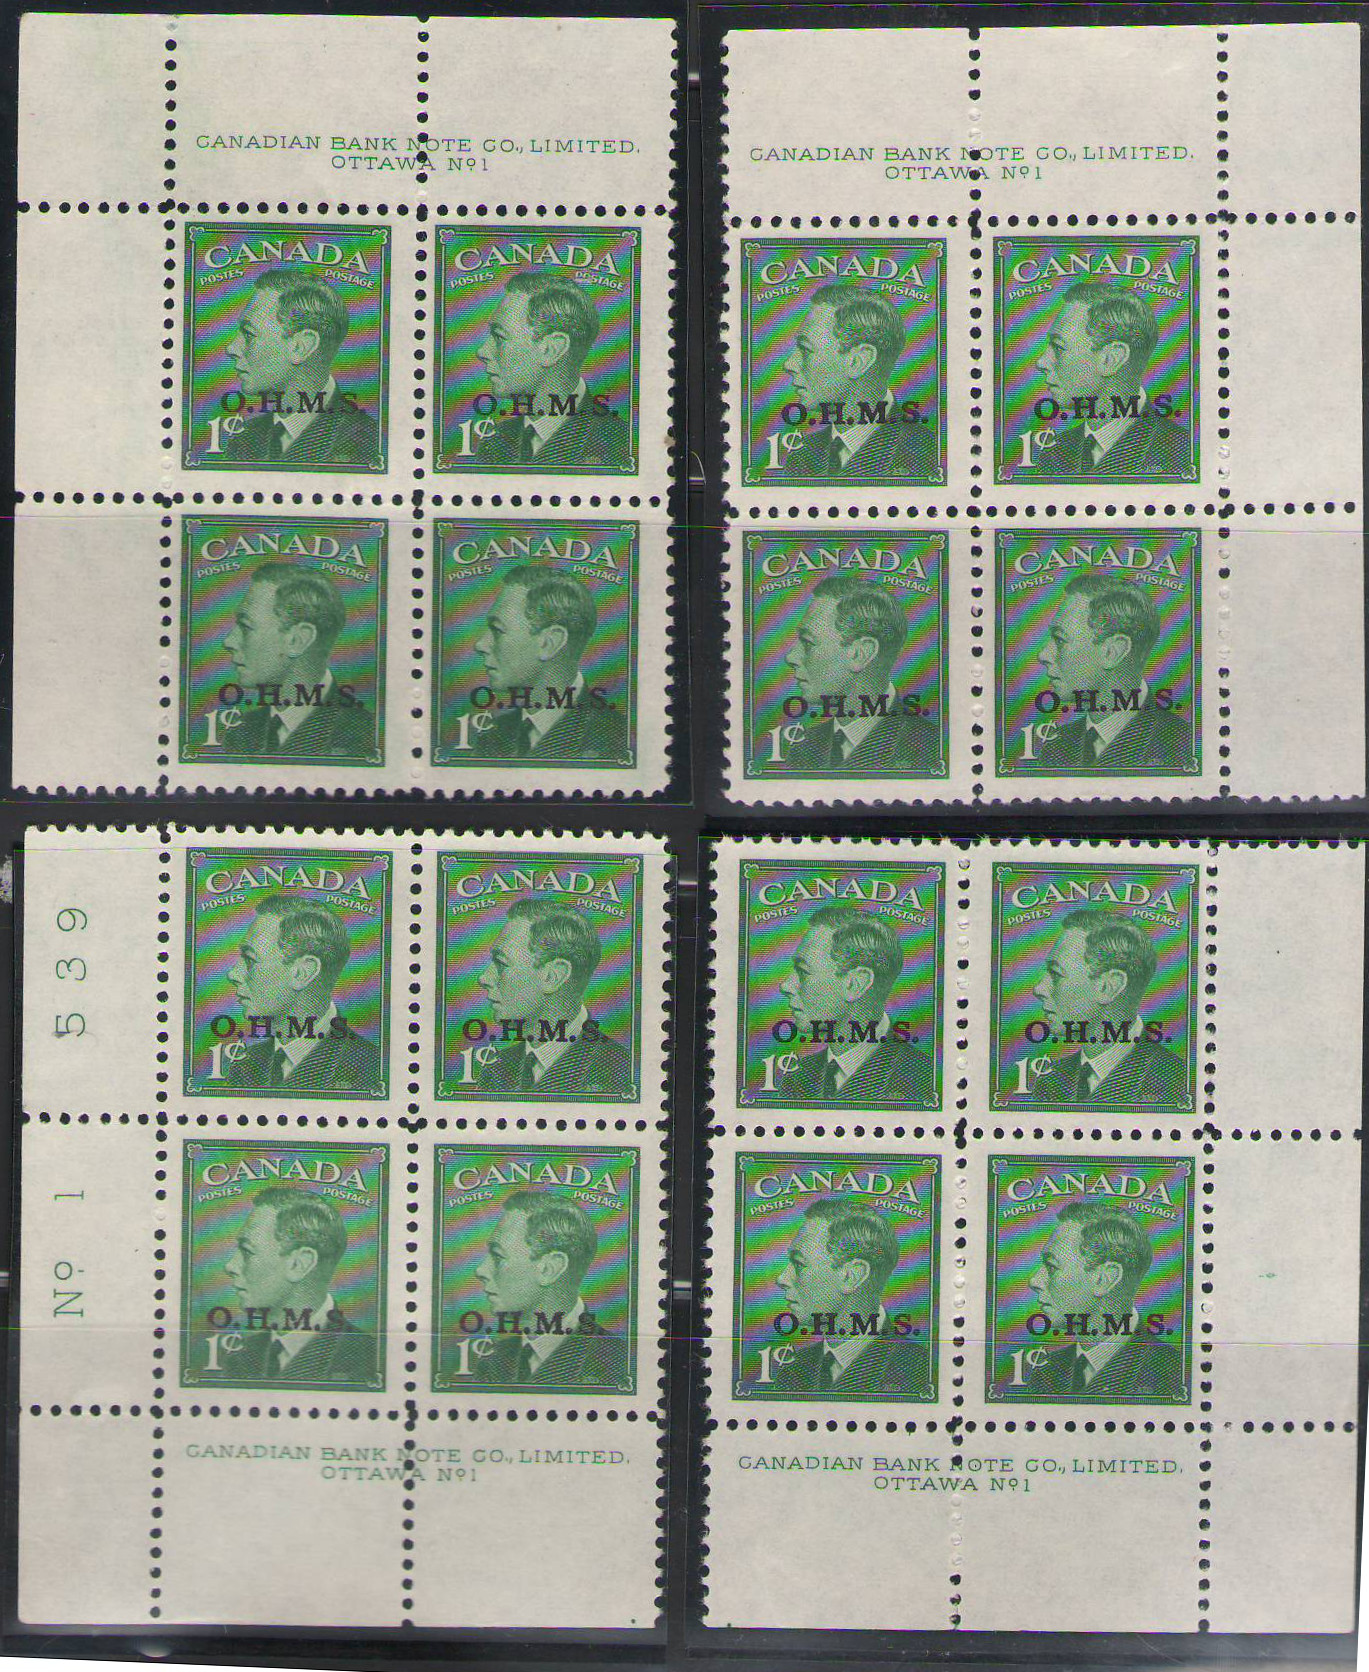 Canada Official - O12 Plate 1 - 4 x 4 MNH matched corner blocks of 4 overprinted O.H.M.S. (2009 Unitrade cv C$140)